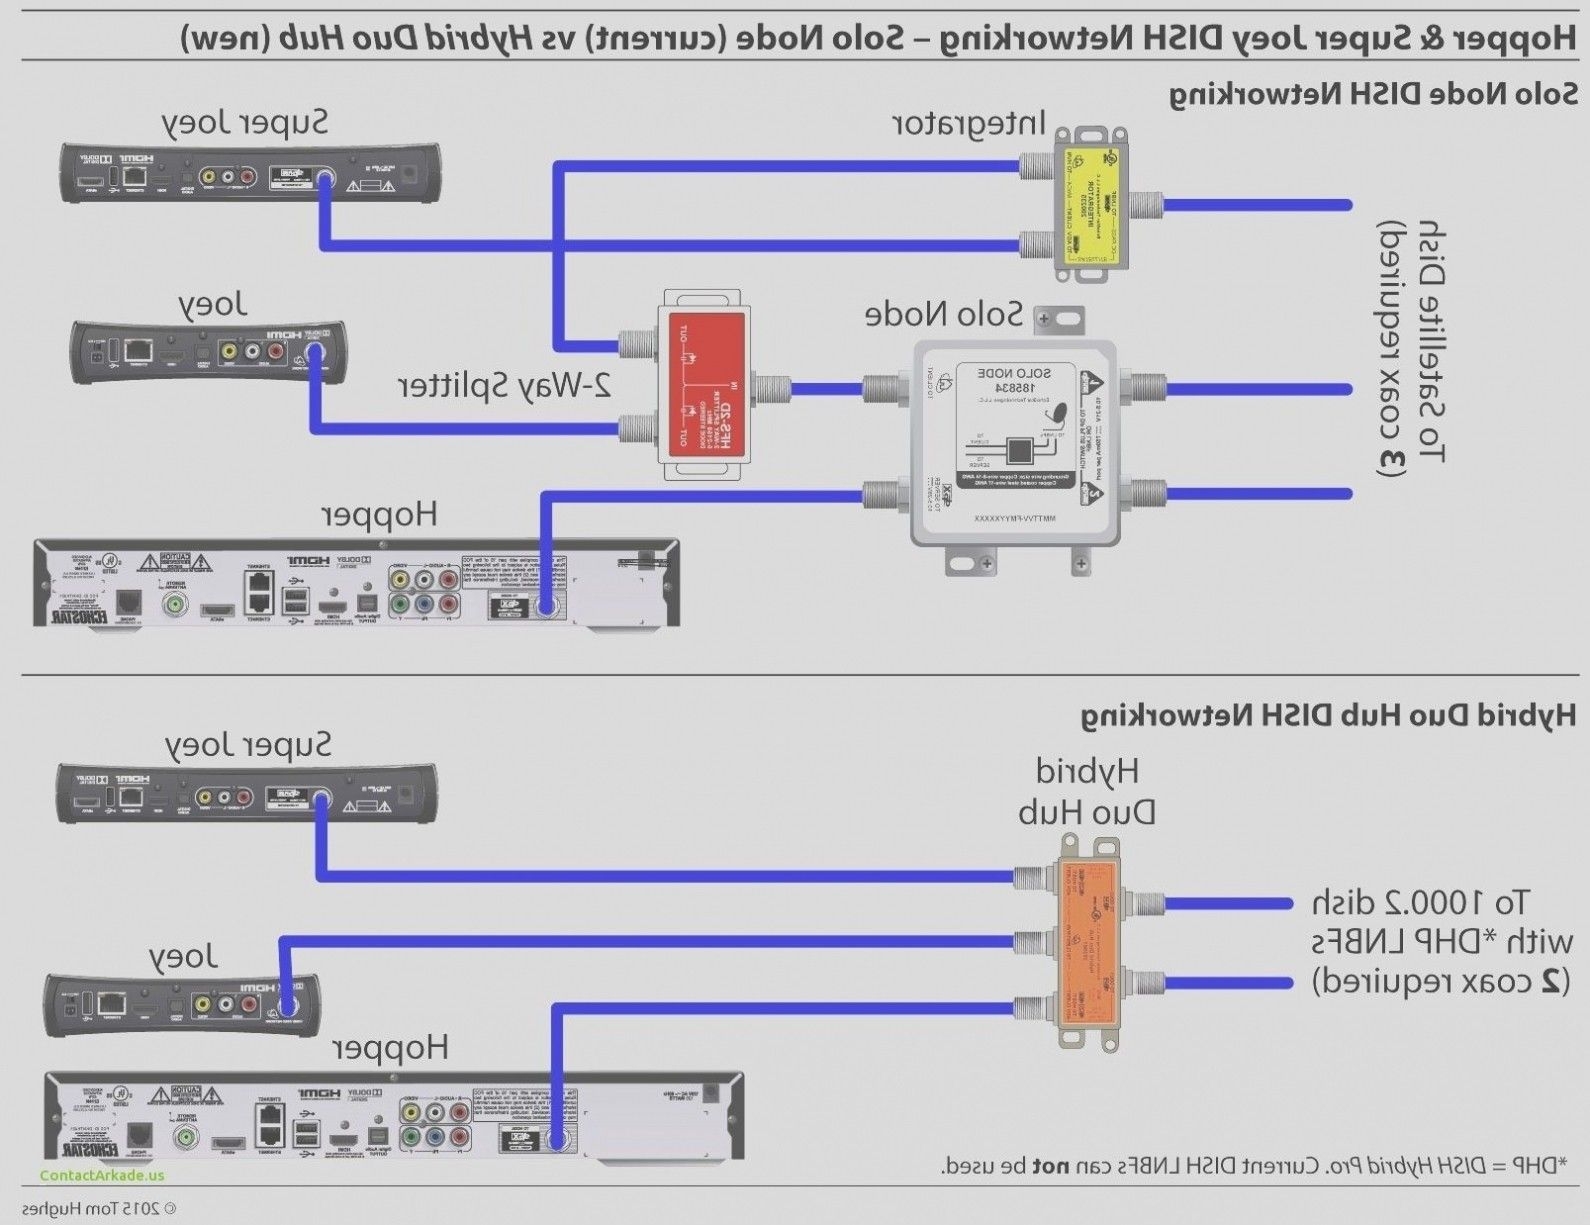 New Wiring Diagram Of Ethernet Cable Diagram Diagramsample Diagramtemplate Wiringdiagram Diagramchart Wo Diagram Ethernet Cable Electrical Wiring Diagram